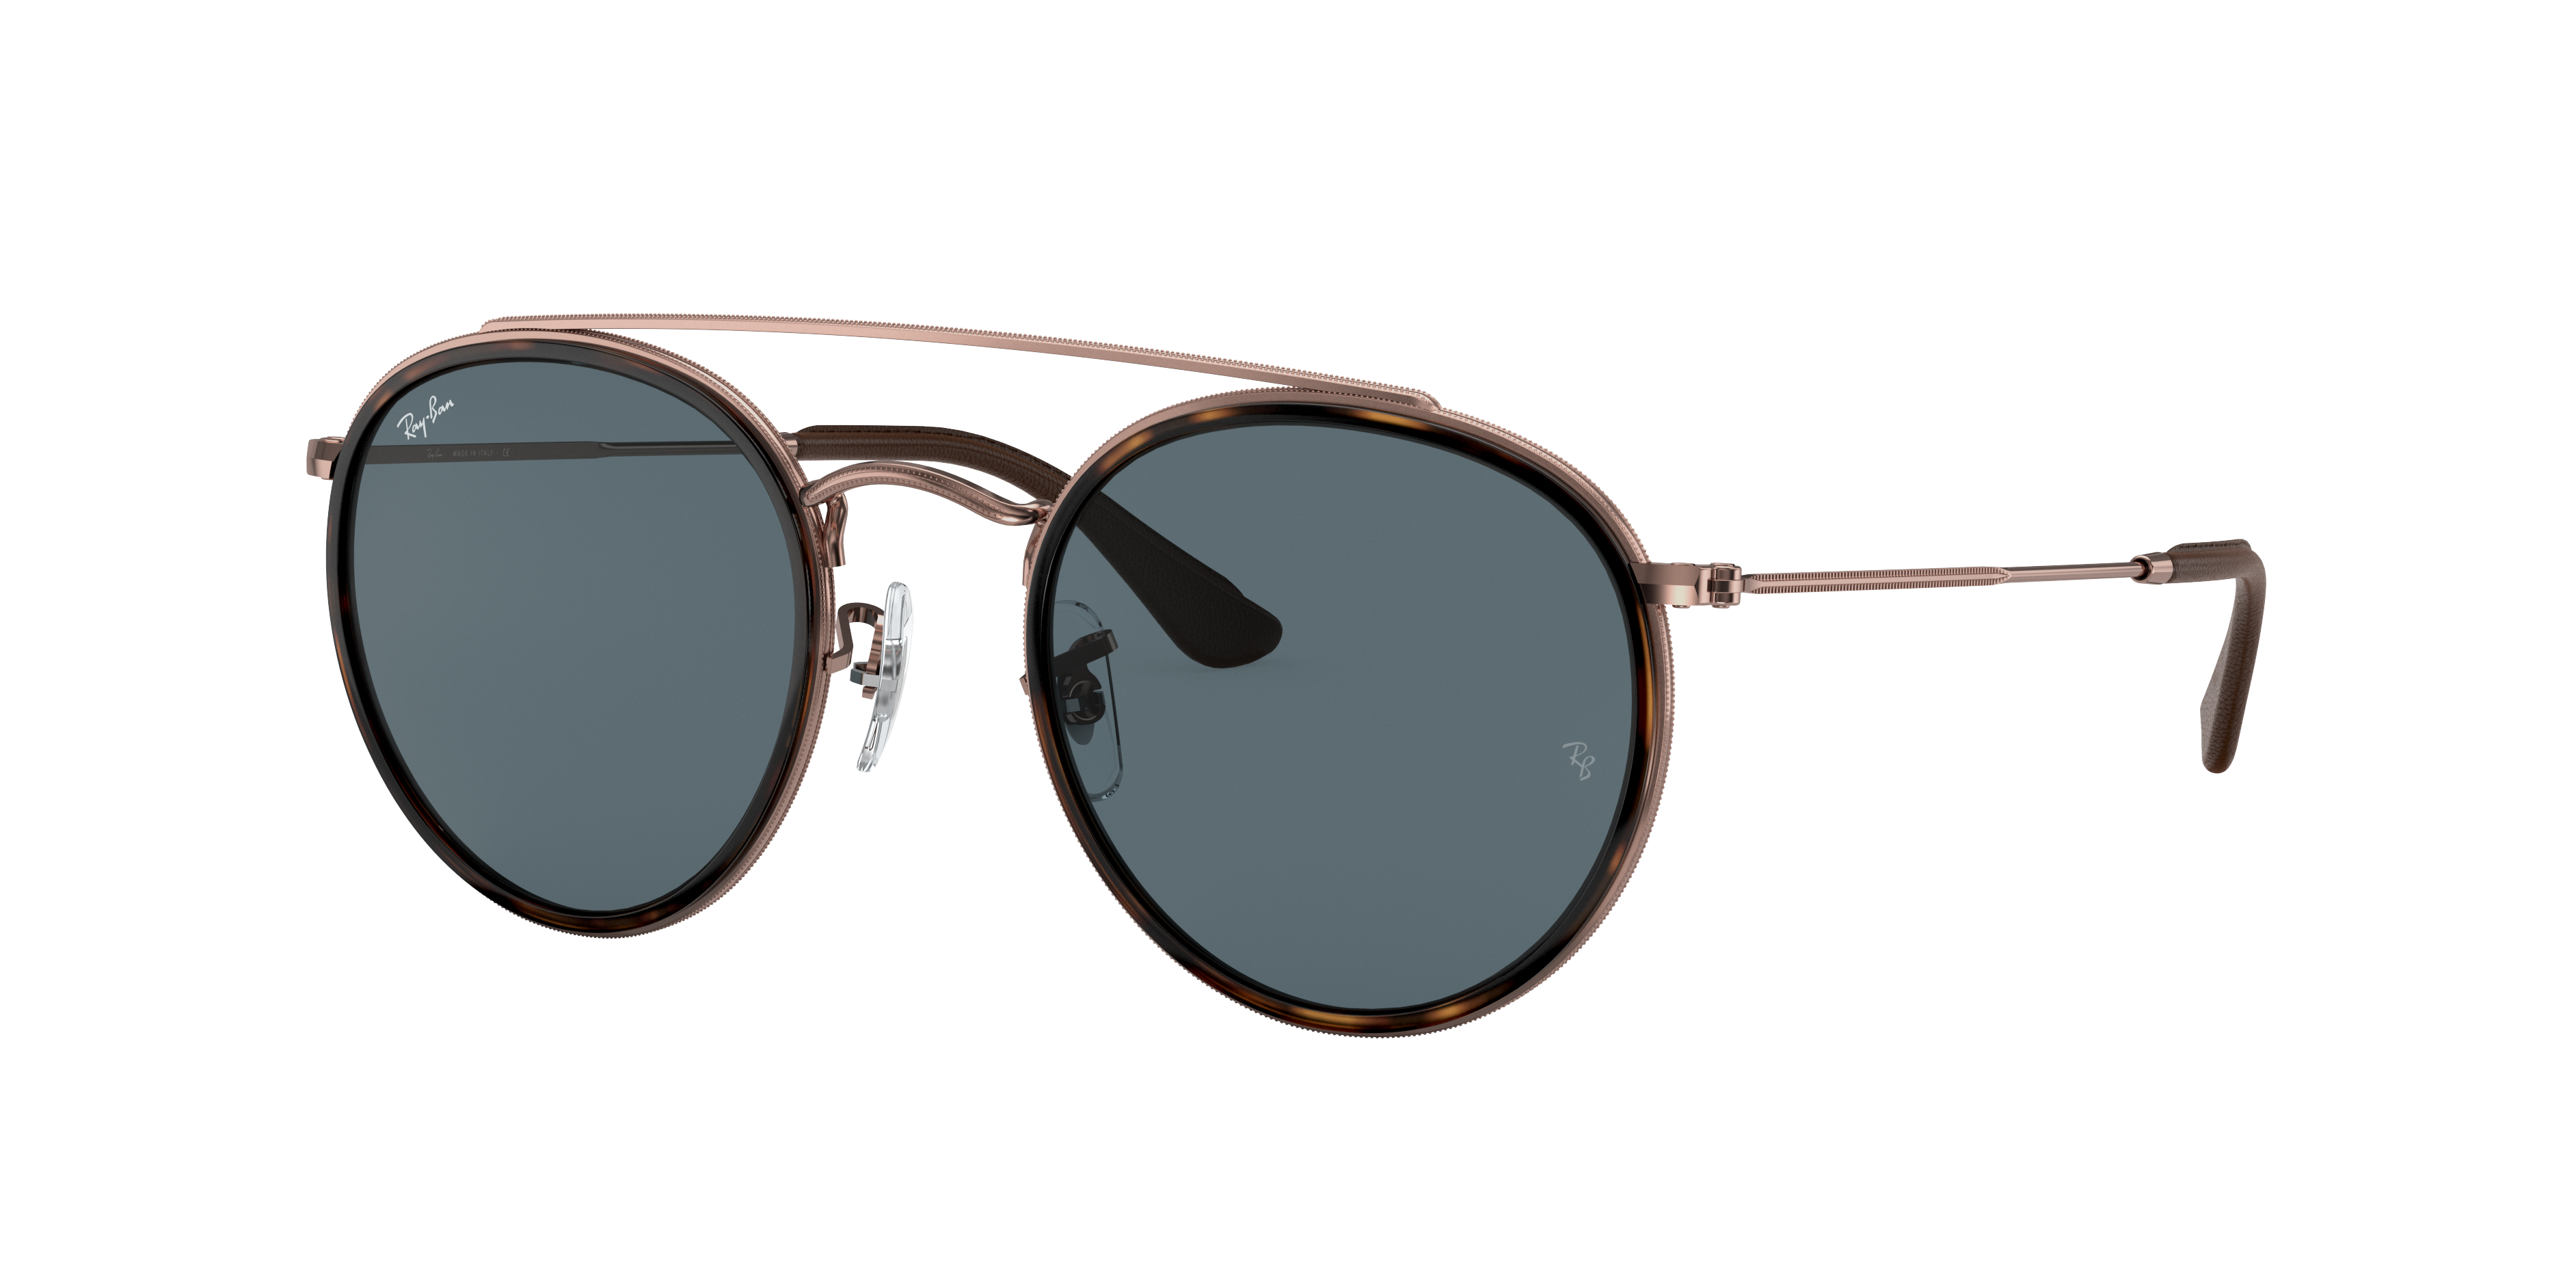 Ray-Ban Round Double Bridge @collection Bronze-Copper, Blue Lenses - RB3647N